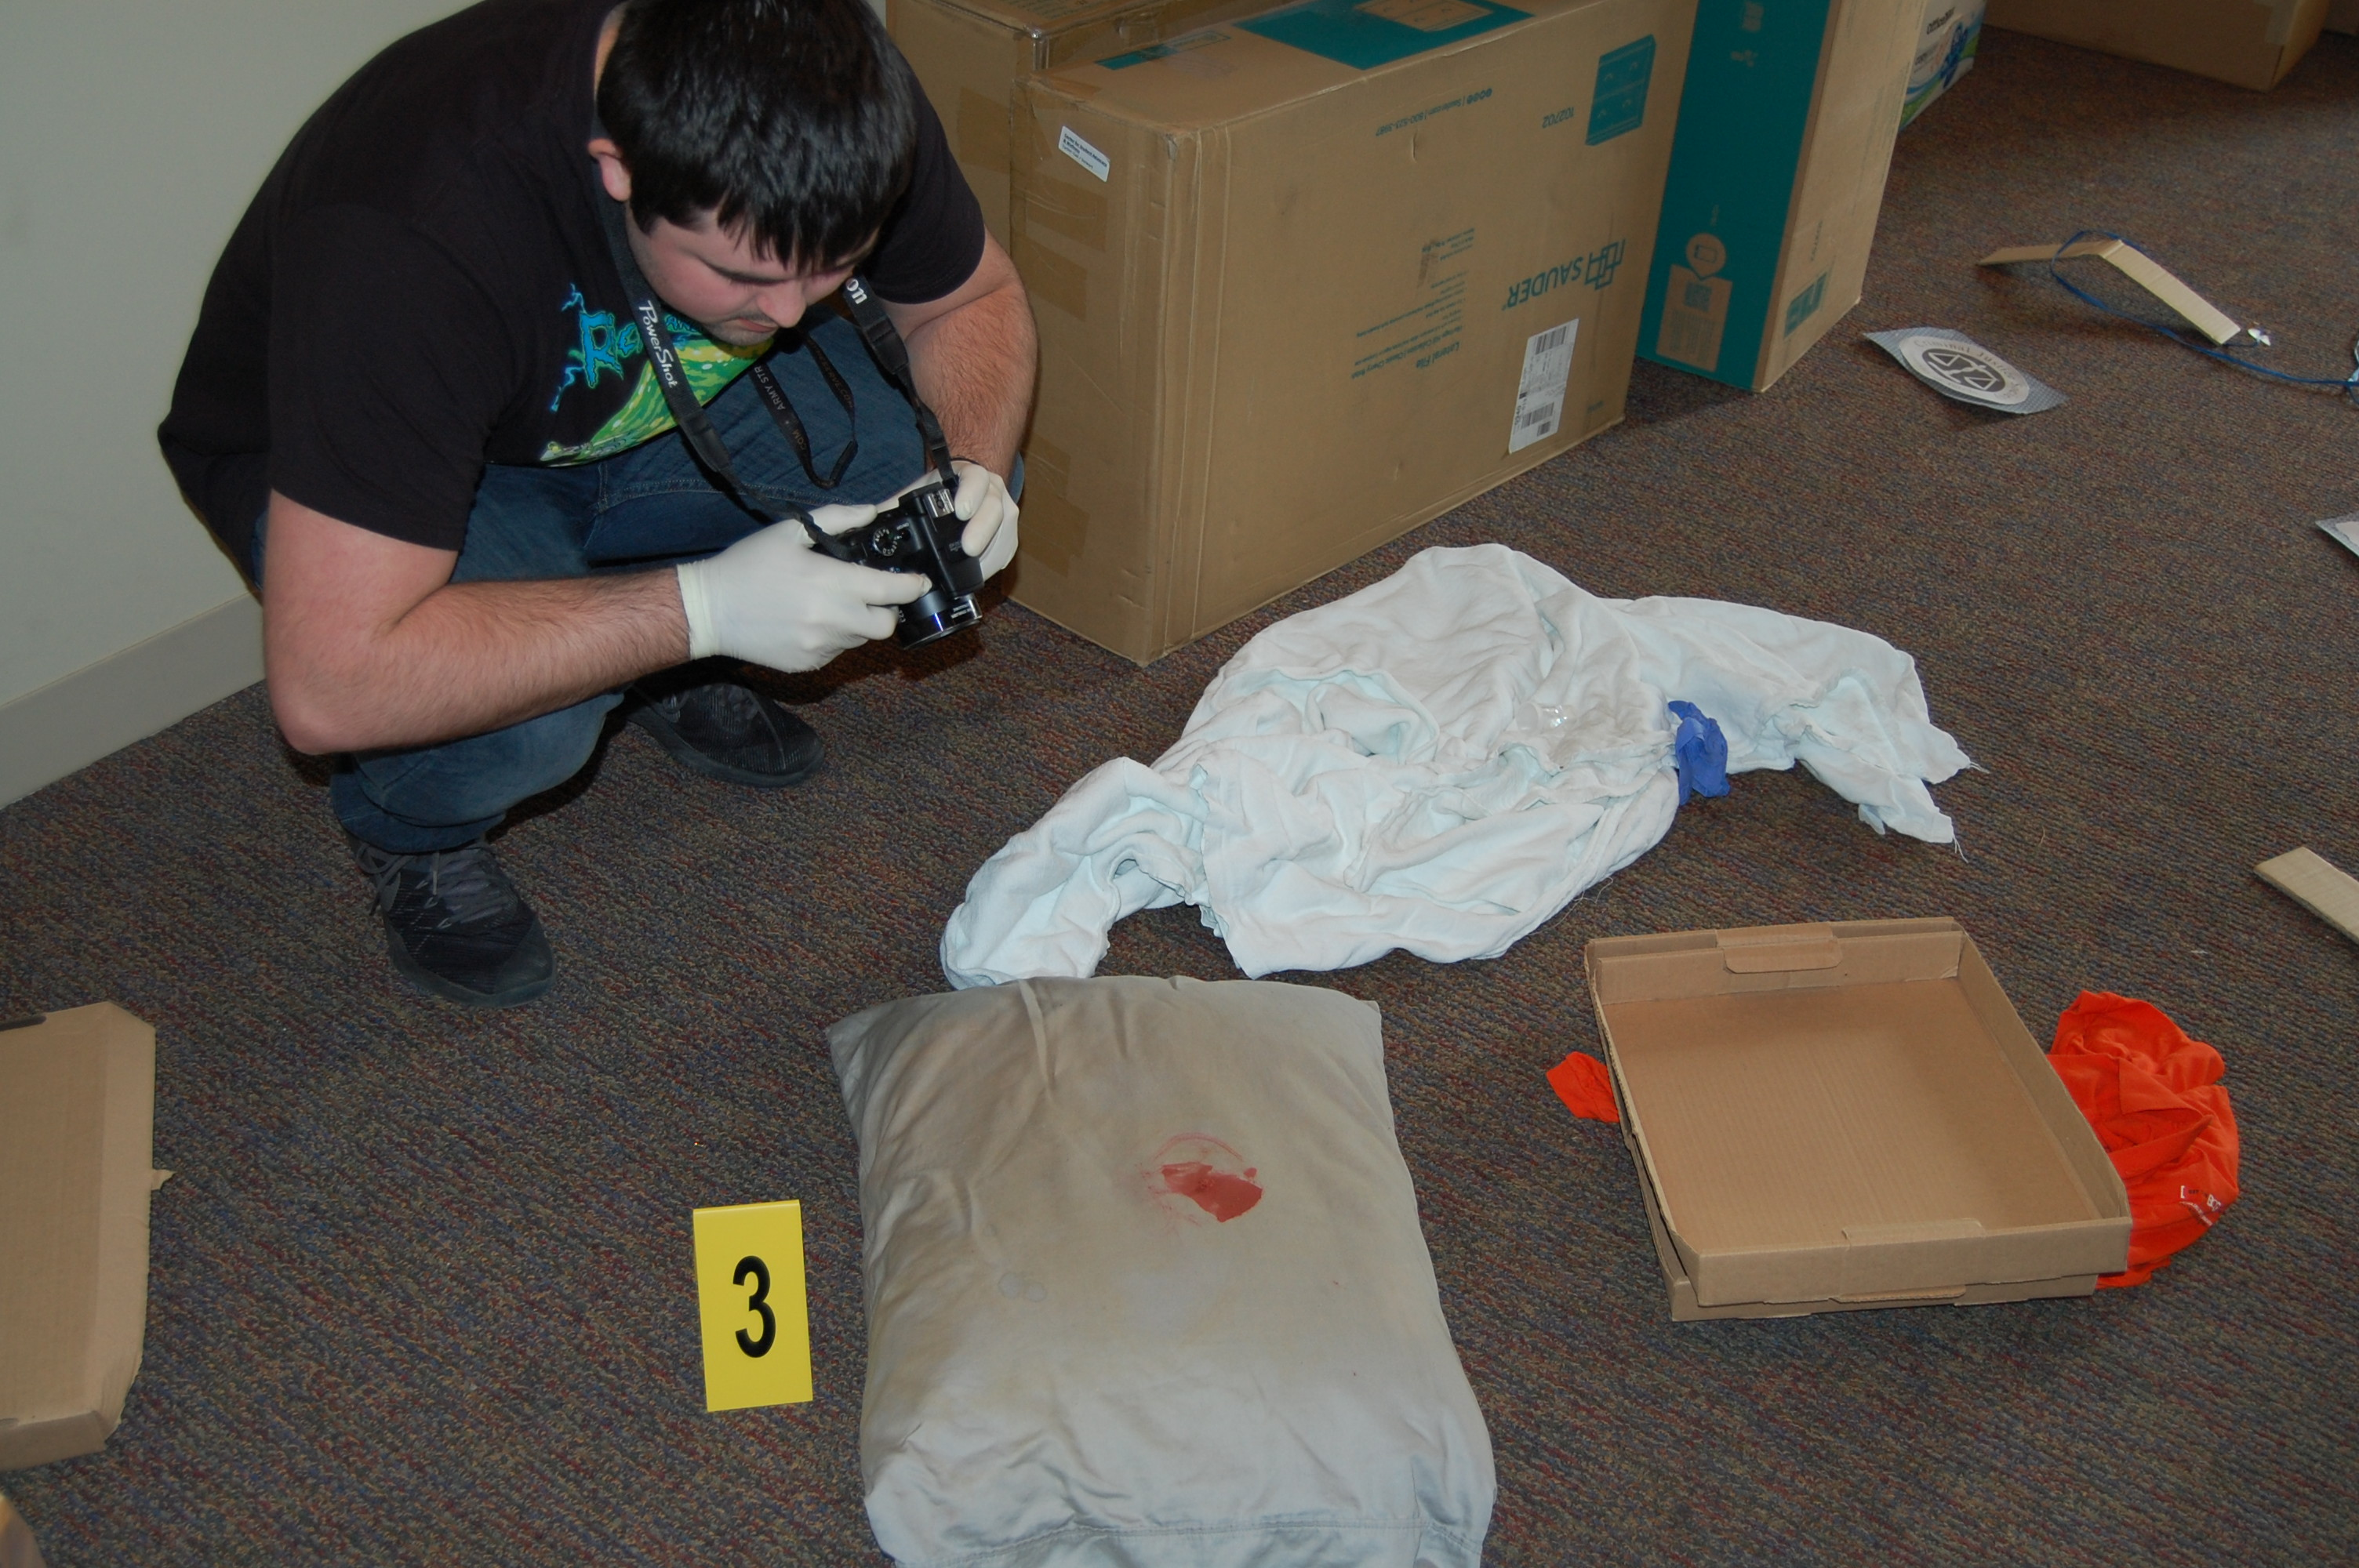 Investigations 3 image 2